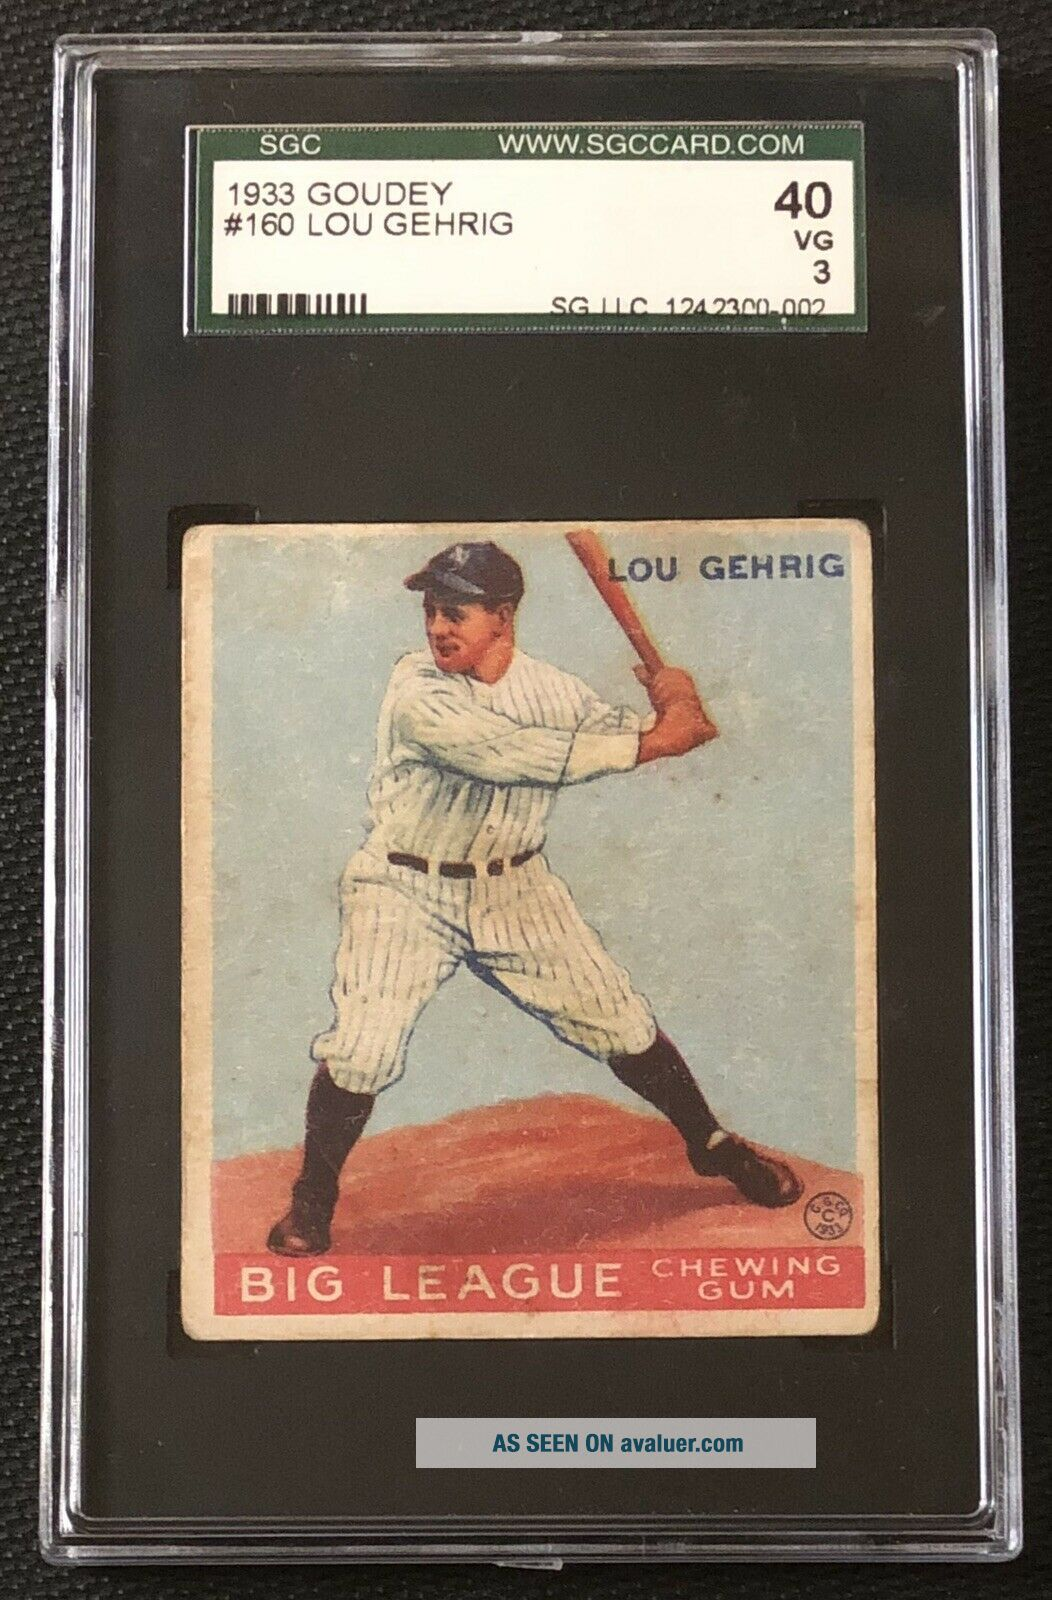 1933 Goudey Lou Gehrig SGC 40 / 3 Very Good 160 NY Yankees HOF